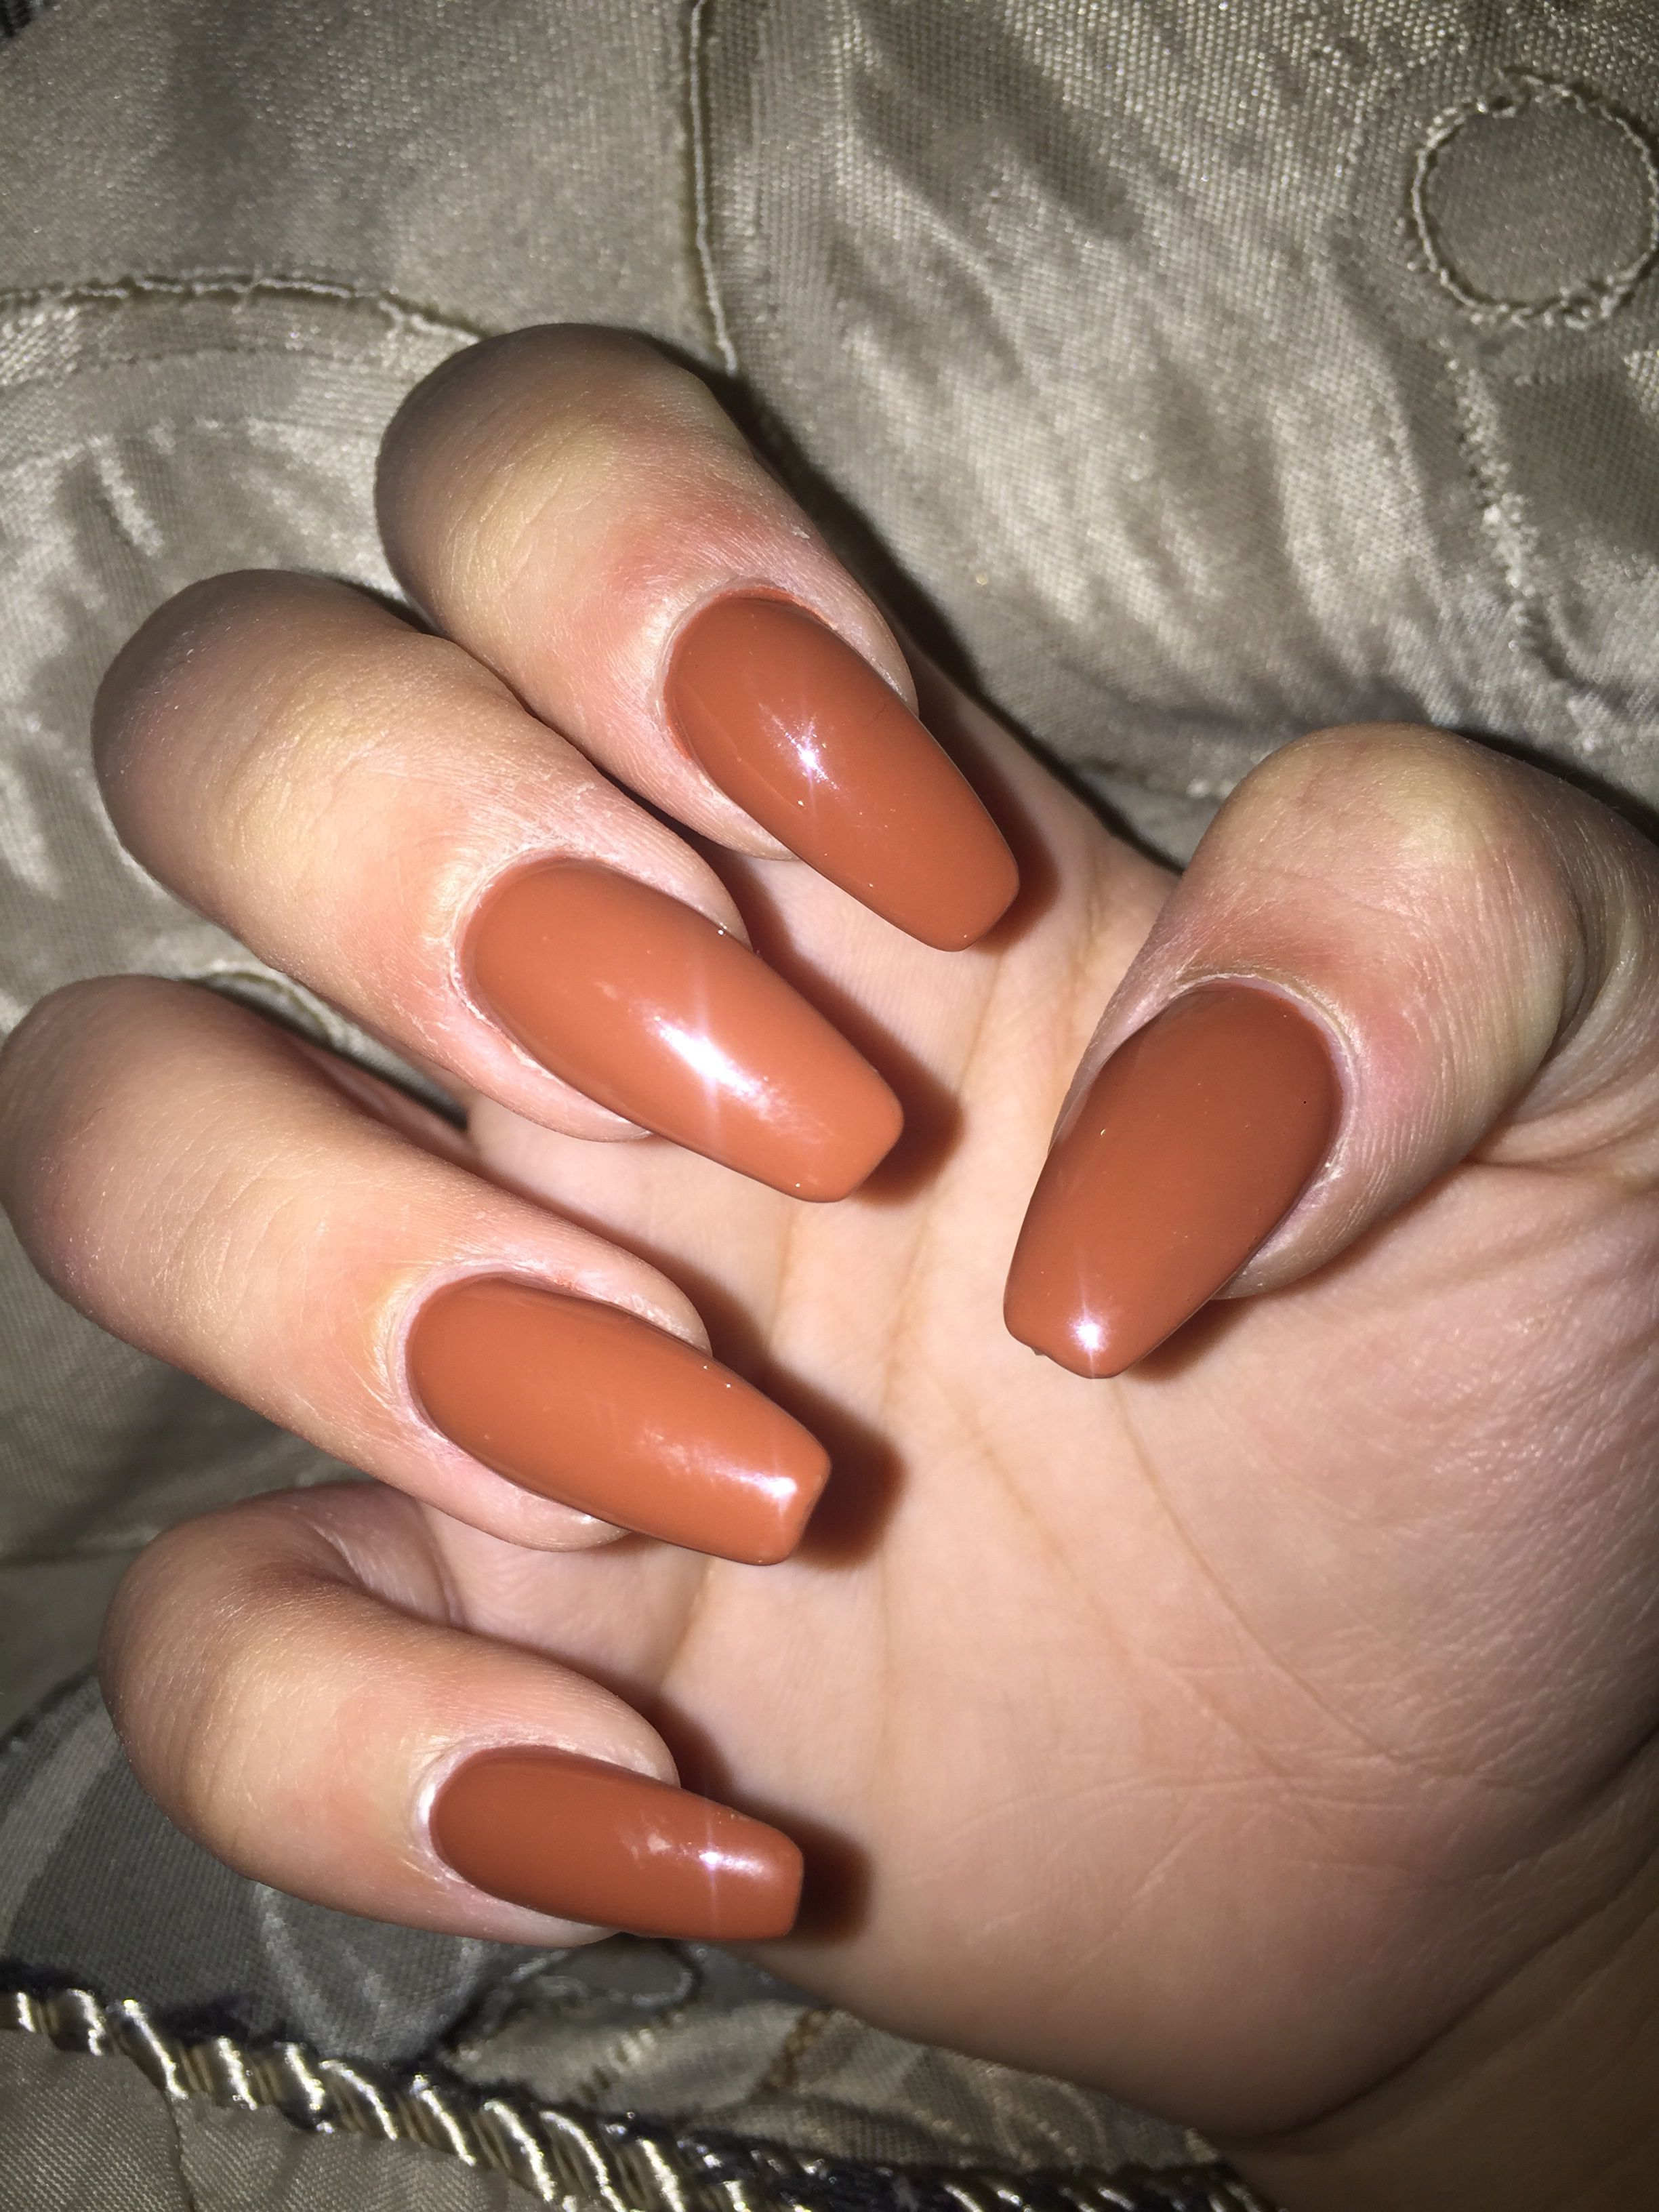 Beautiful caramel coffin nails | Nails, Nails inspiration, Autumn nails